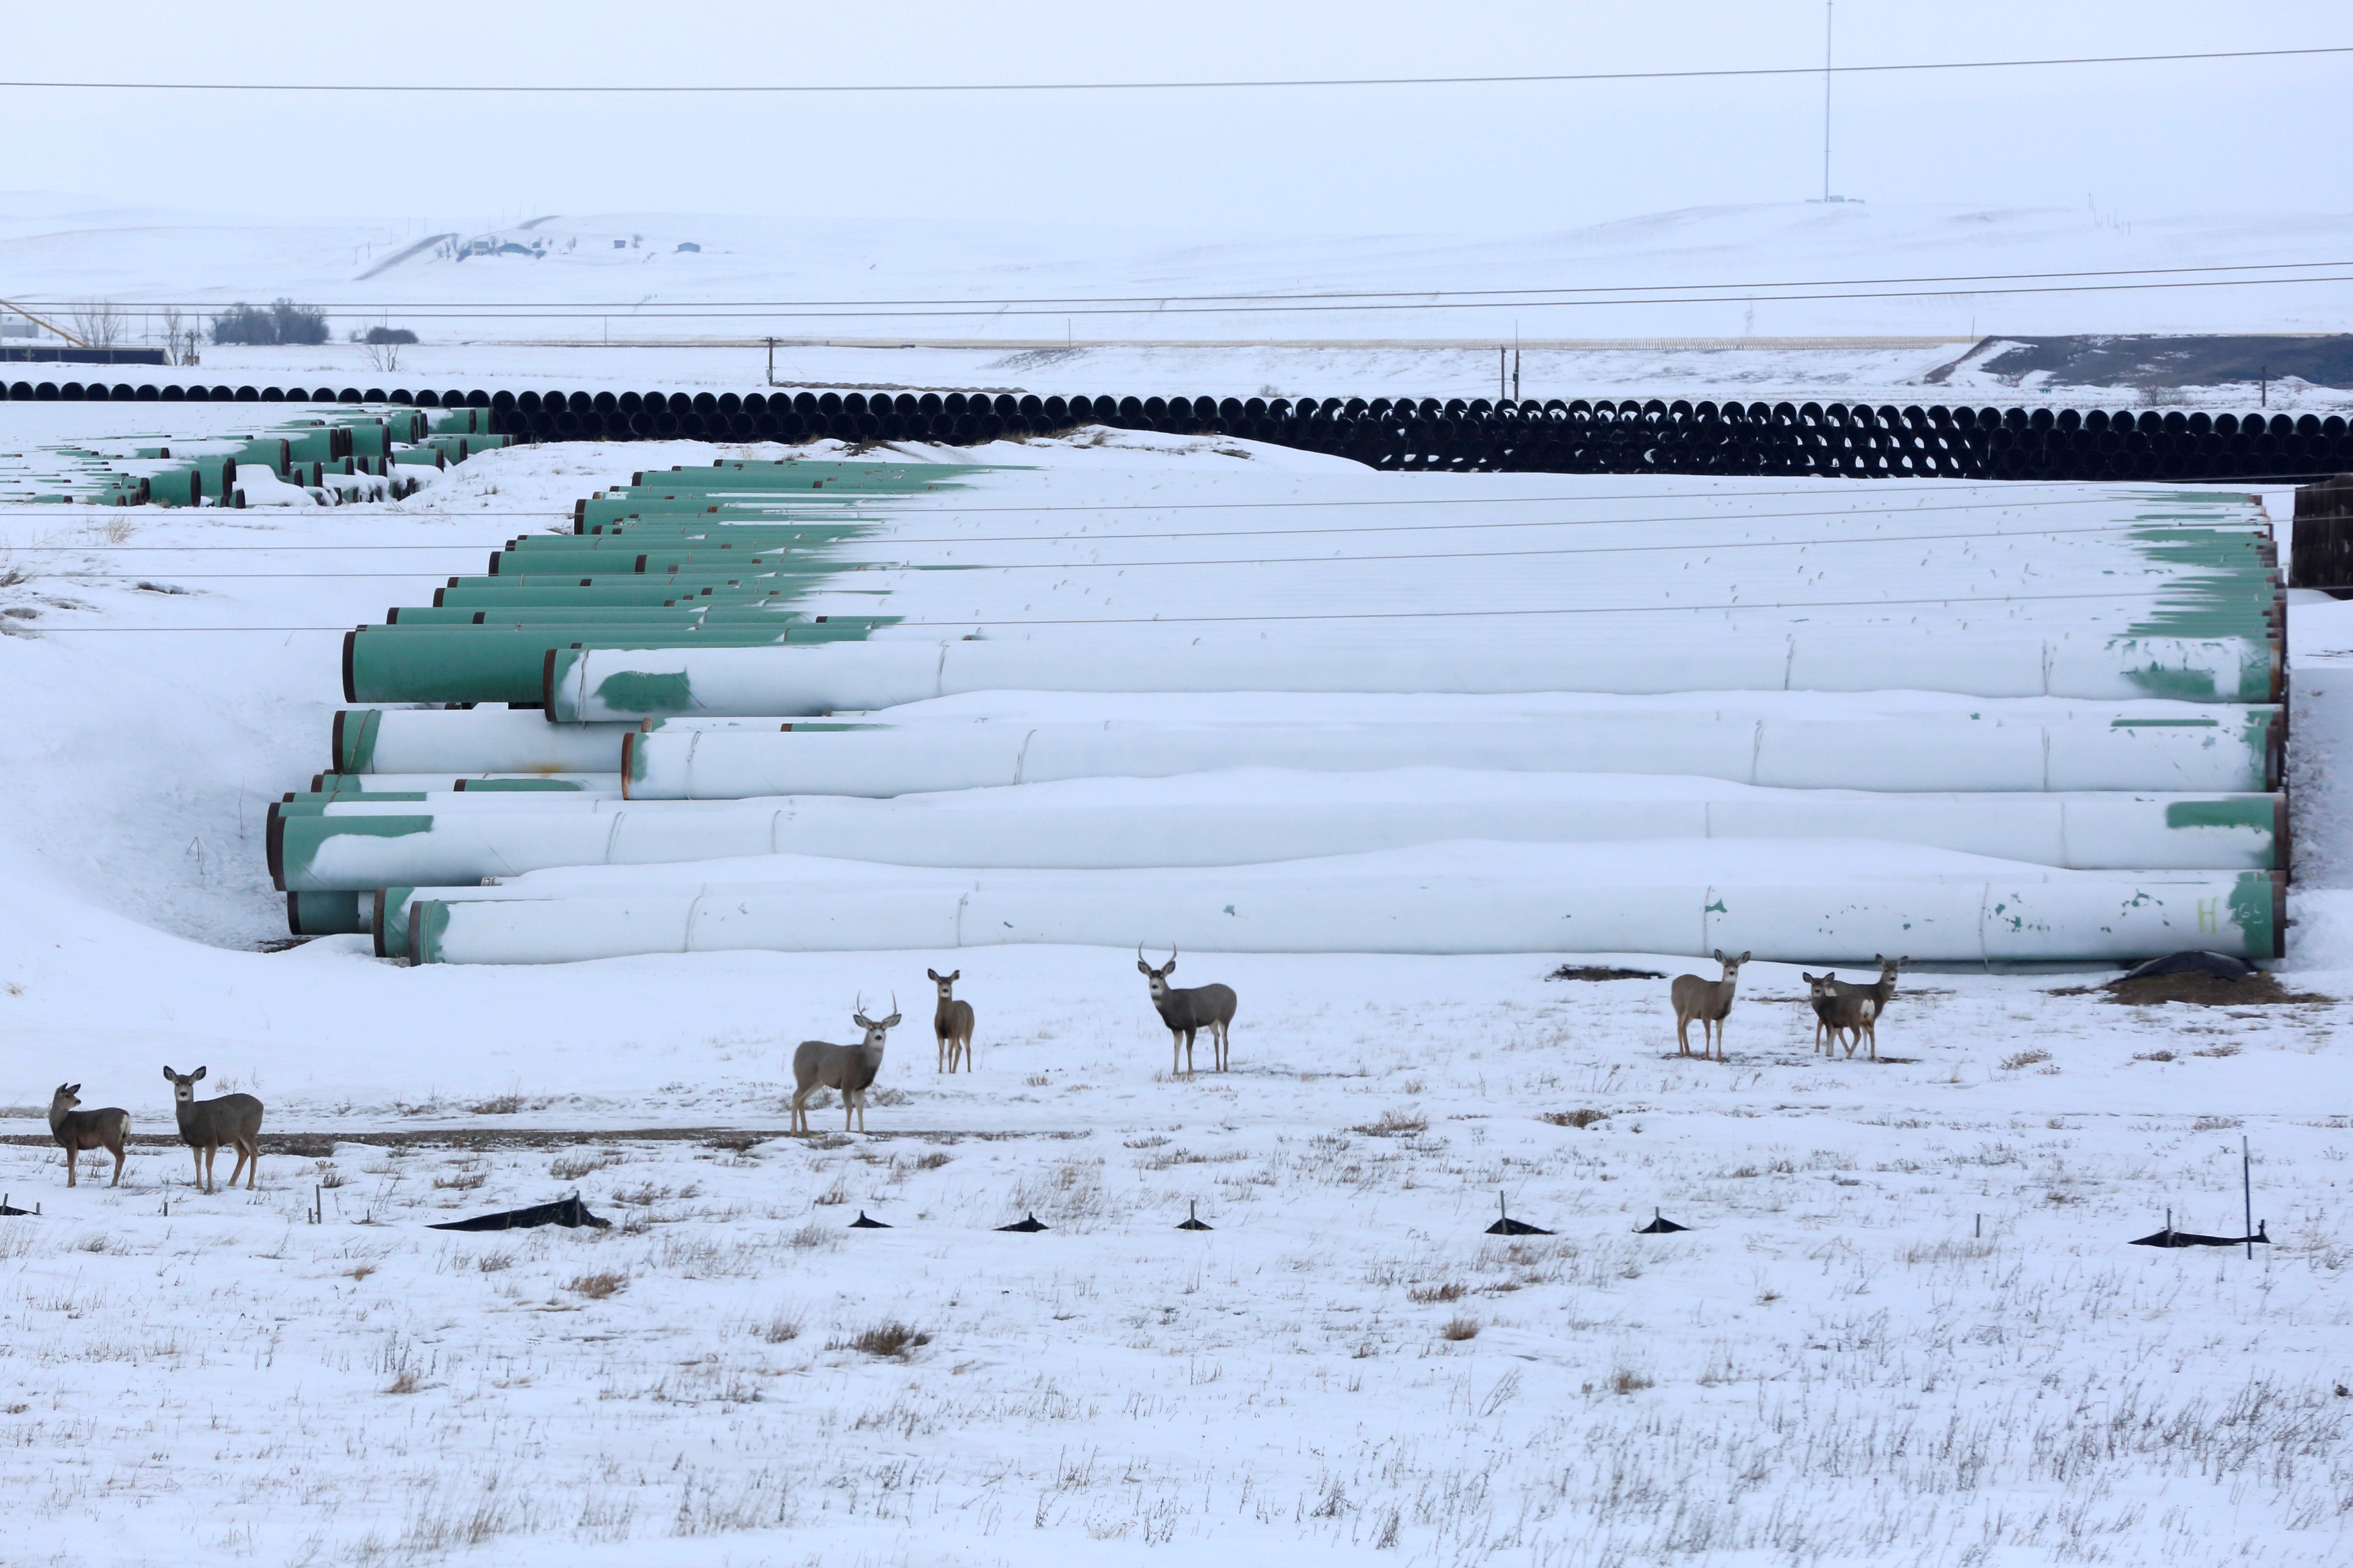 A depot used to store pipes for TC Energy Corp's planned Keystone XL oil pipeline is seen in Gascoyne, North Dakota, January 25, 2017.  REUTERS/Terray Sylvester